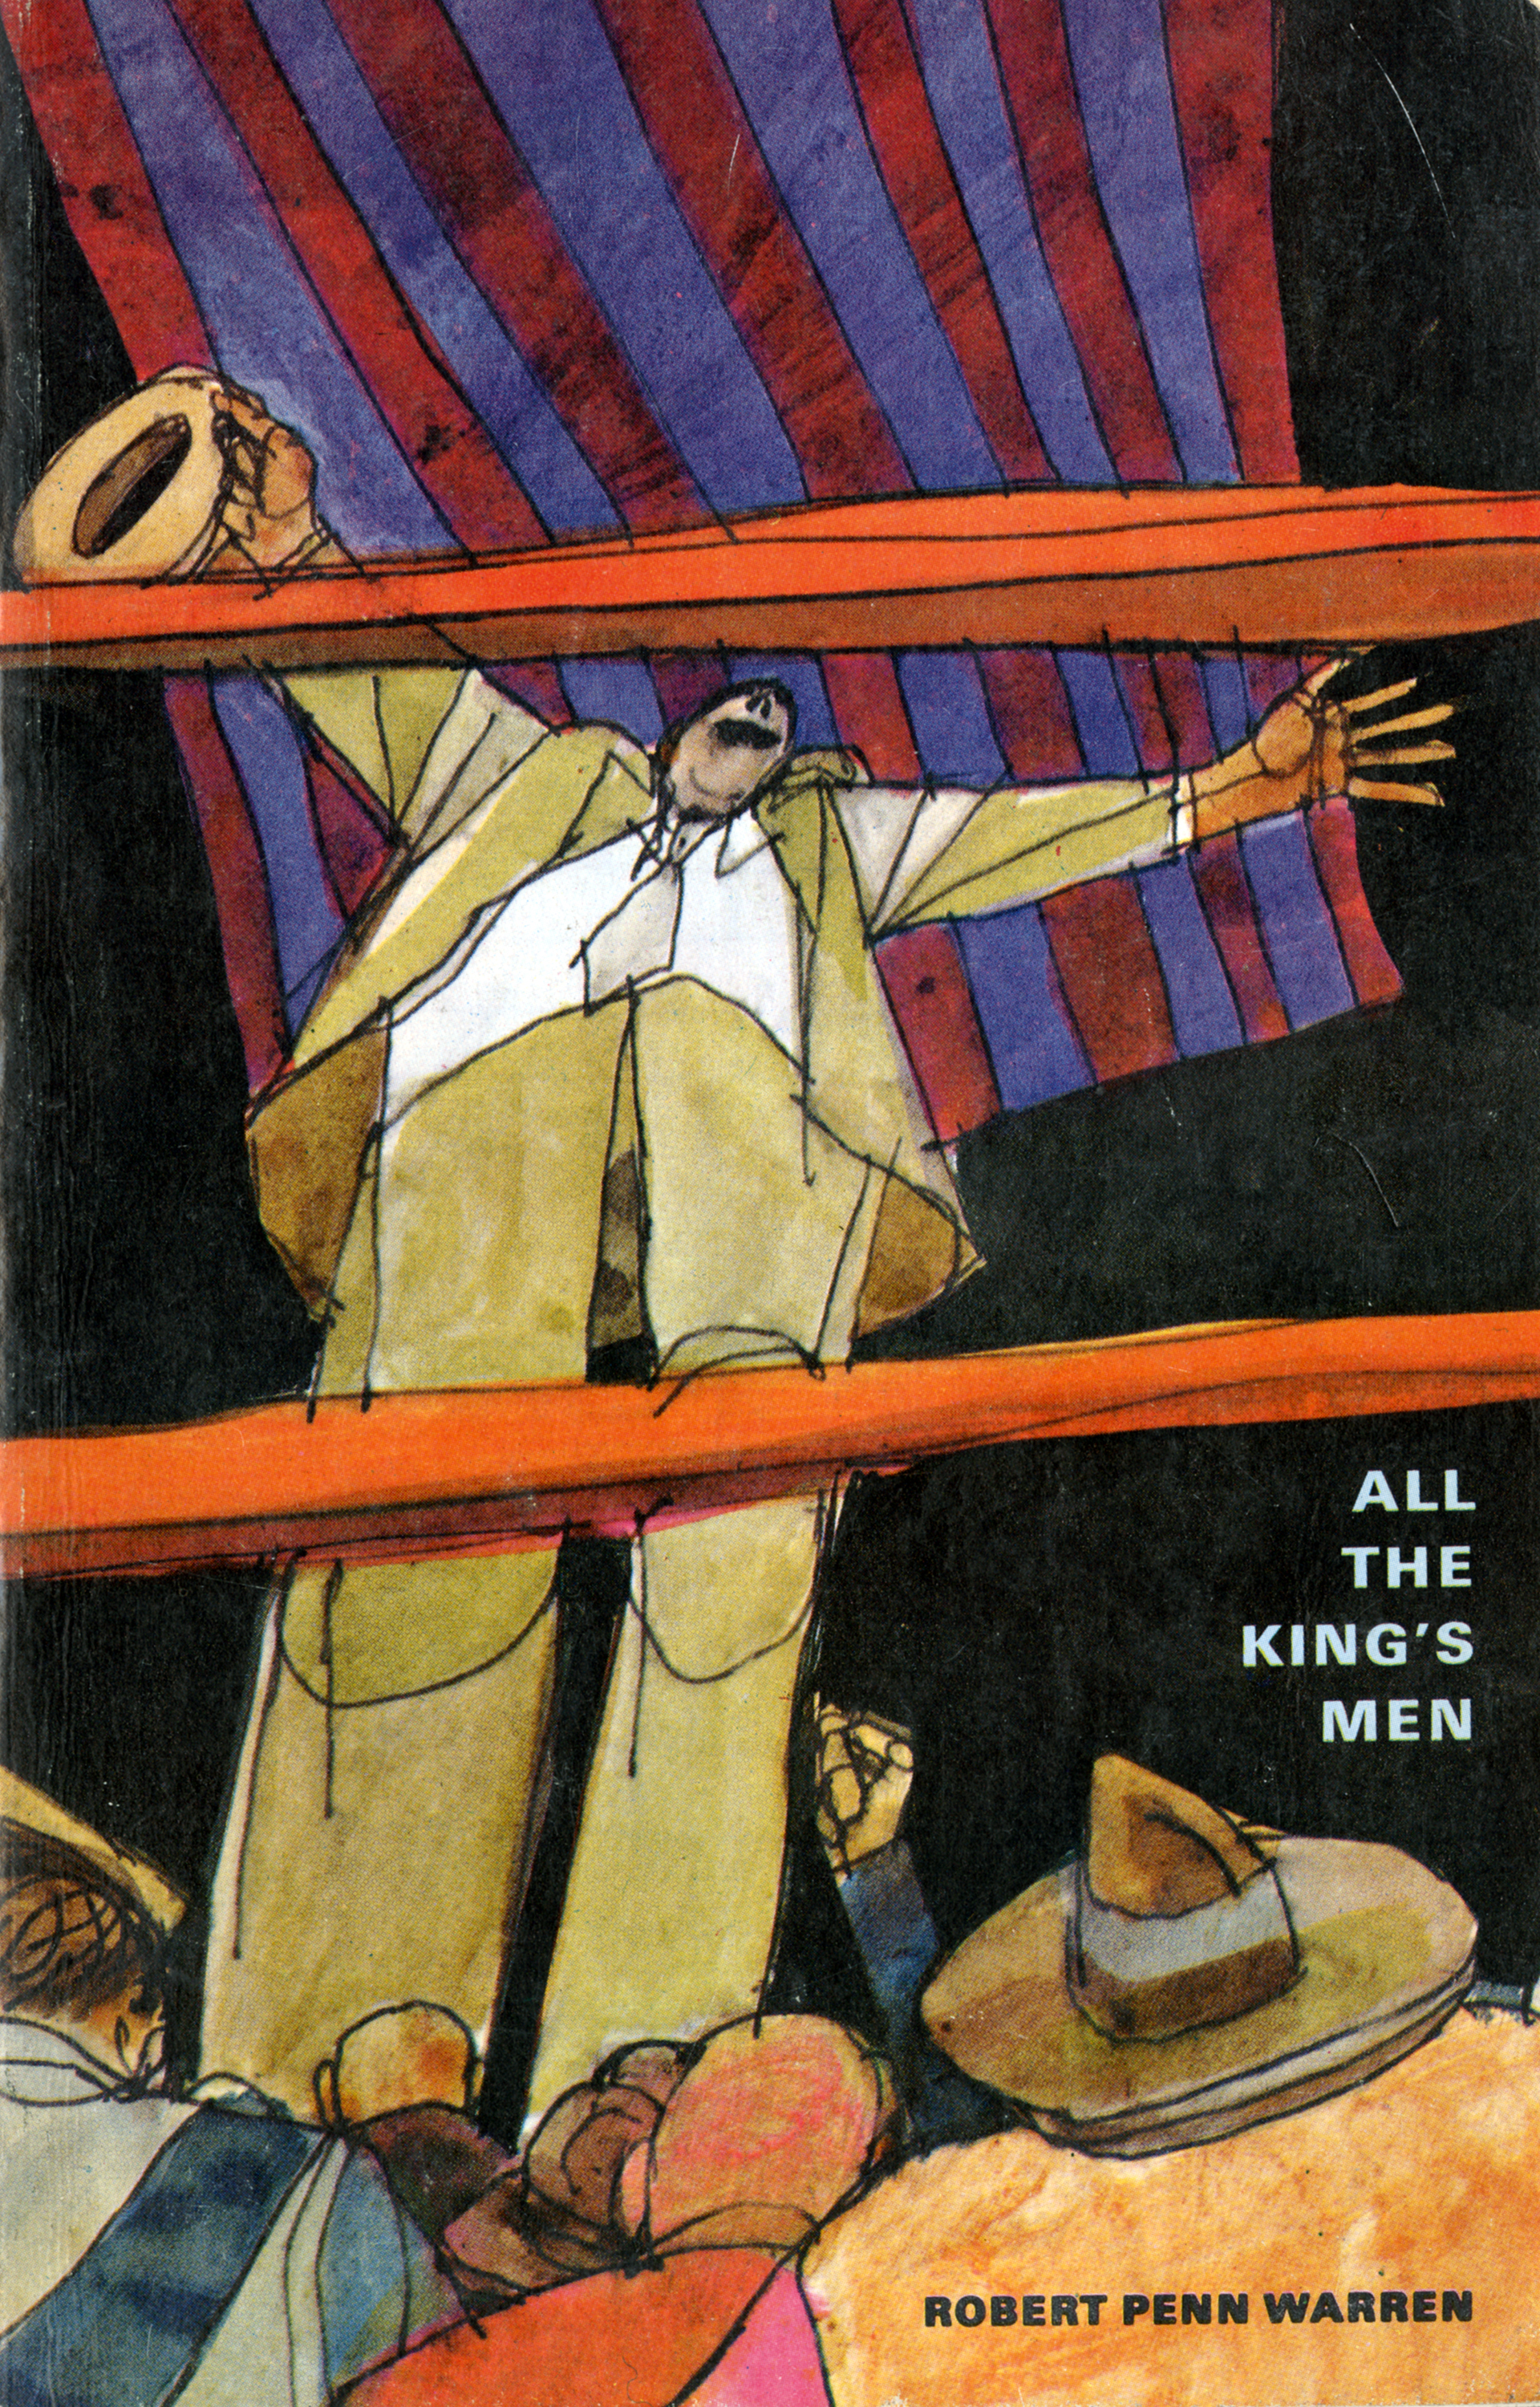 Color illustration of a man in a suit in a boxing ring, looking down at the audience with his arms up.